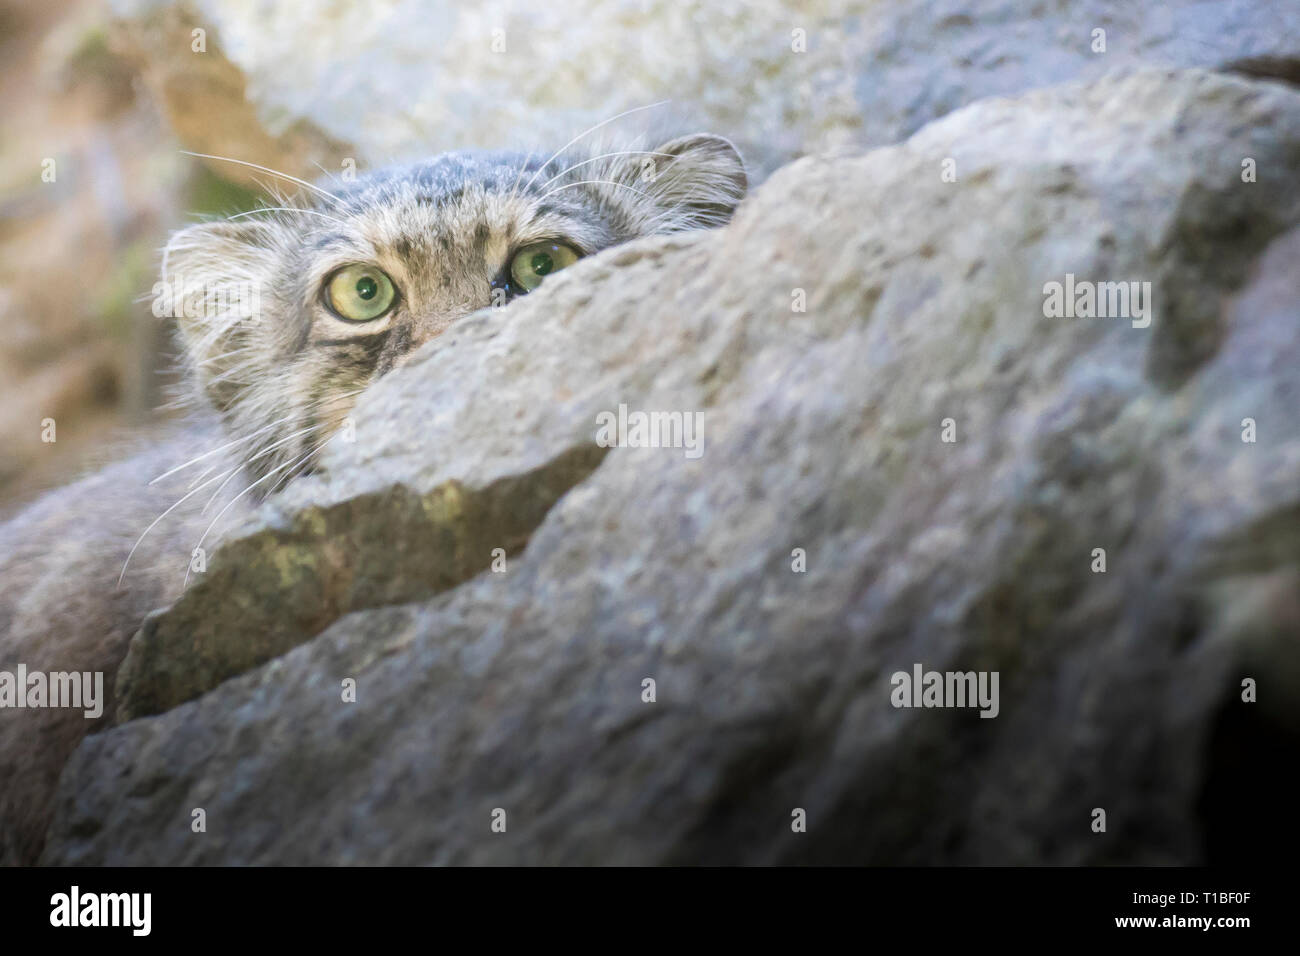 Manul cat (otocolobus manul) looking at camera from behind a rock.  Close up portrait with copy space. - Stock Image